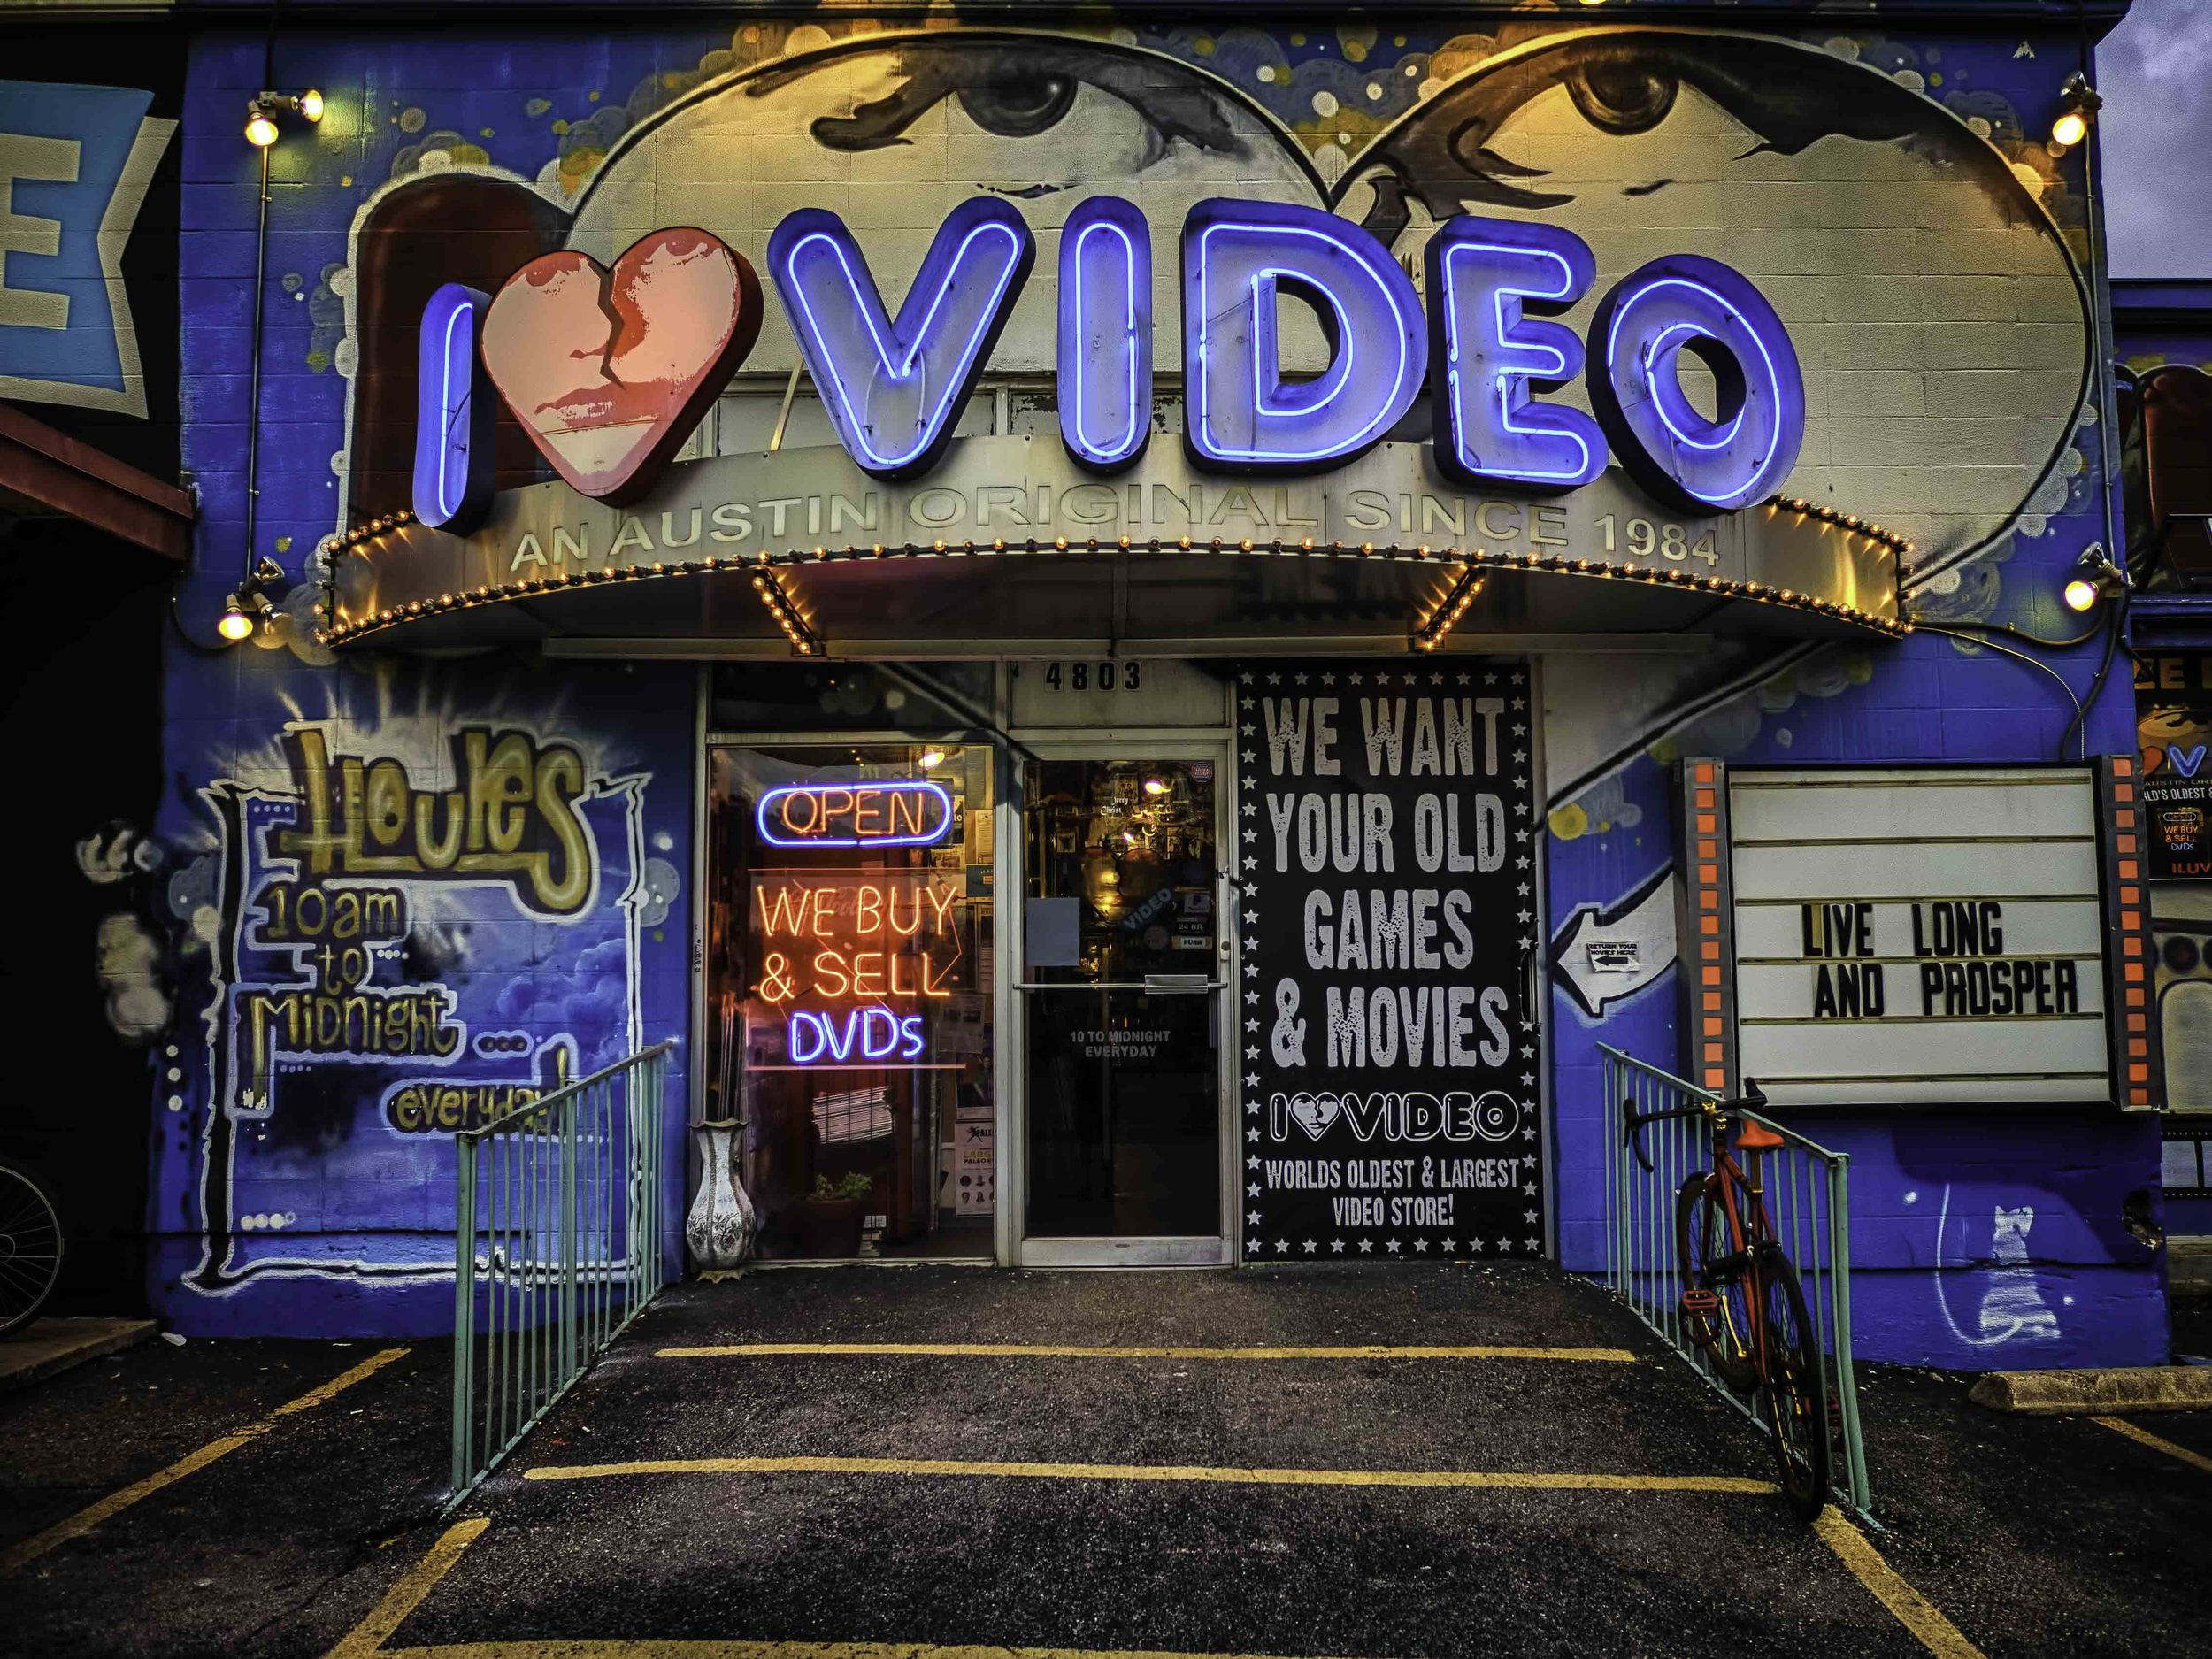 I Love Video (I Heart Video, maybe?) is on Airport Blvd and I just had to run by here for a couple of shots.